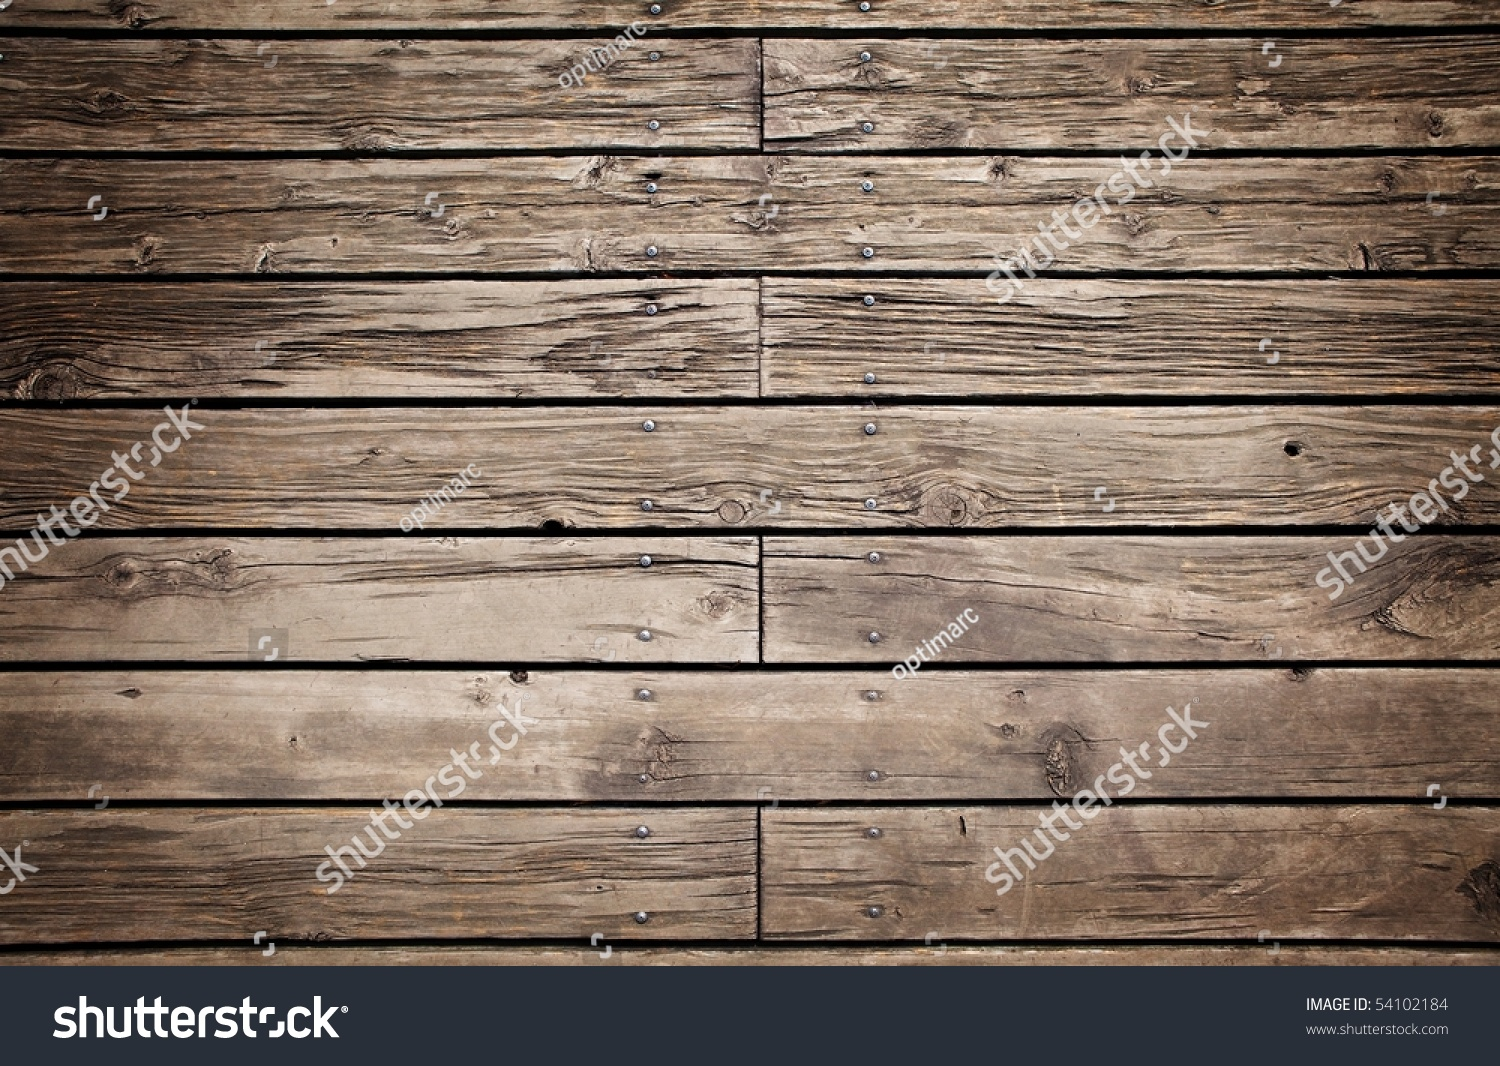 Superb img of Grungy Wooden Paneling Flooring Stock Photo 54102184 Shutterstock with #7F644C color and 1500x1066 pixels